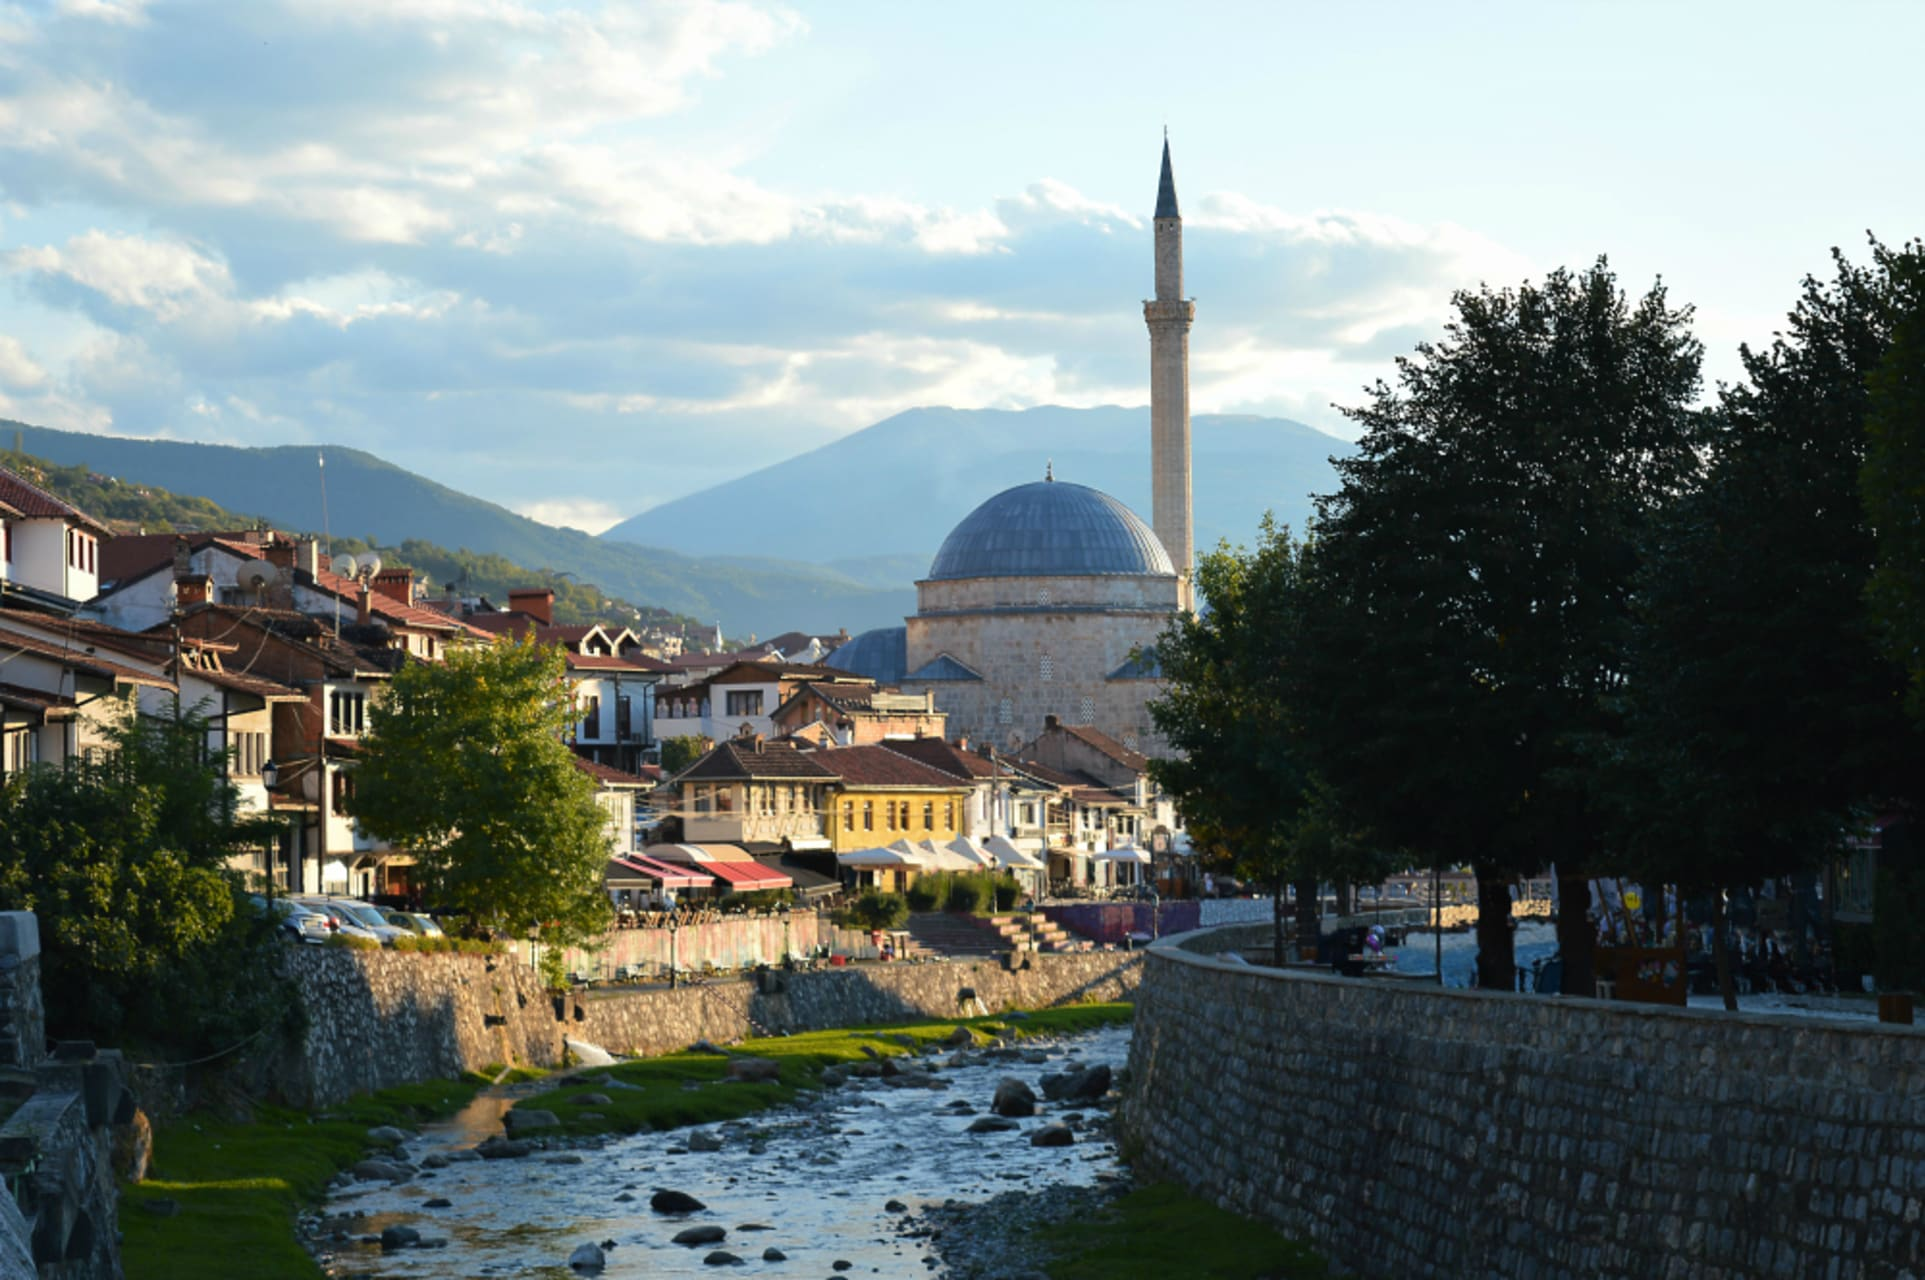 Prizren - Prizren highlights: Explore the heritage of Youngest european country